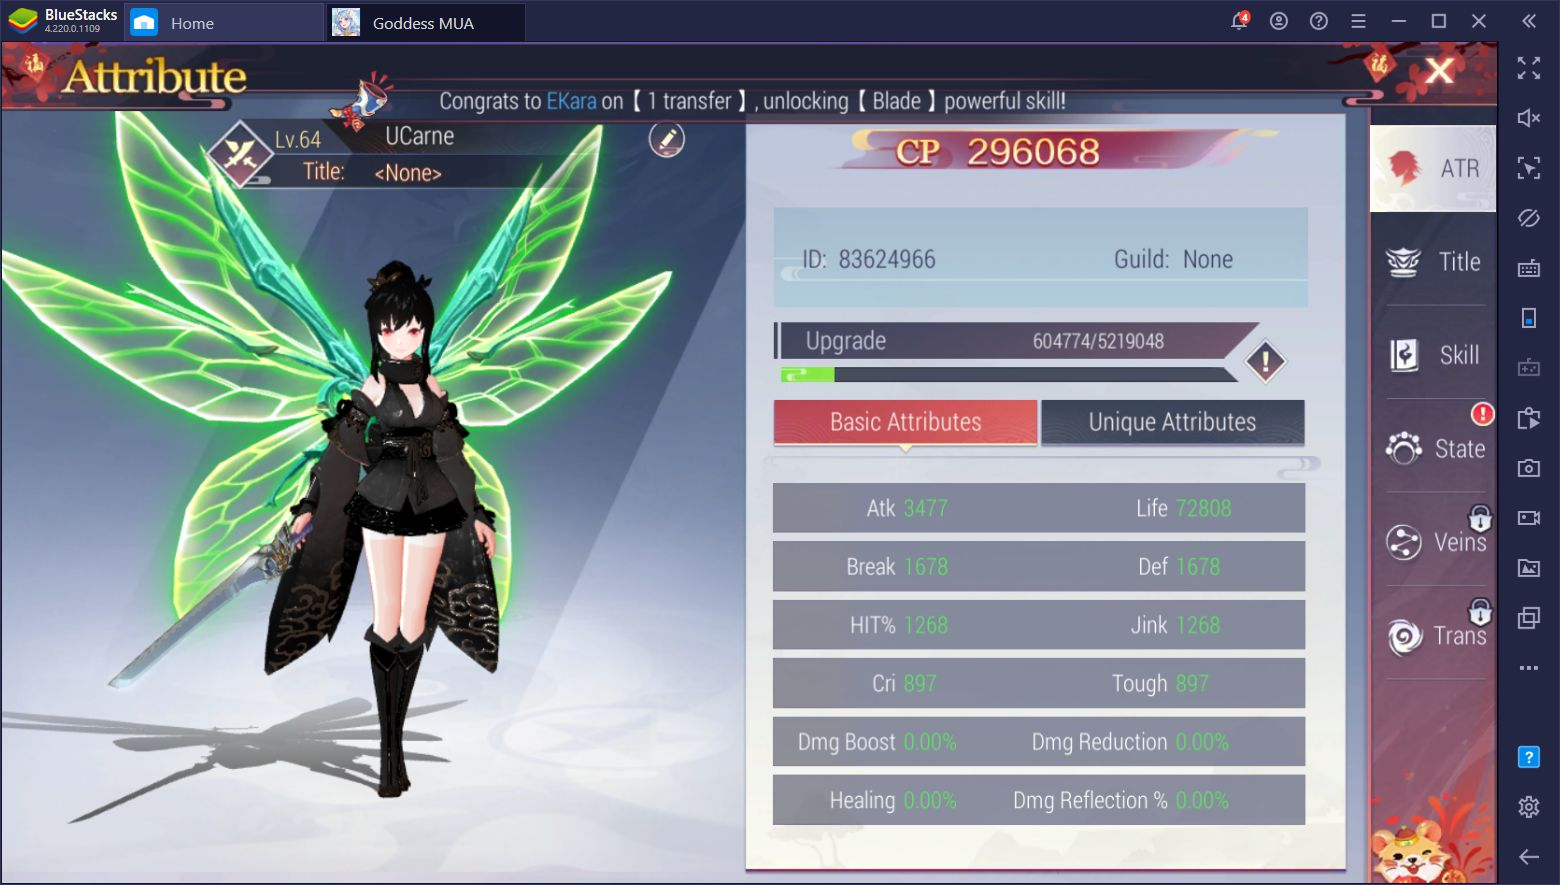 Goddess MUA Beginner's Guide – Tips and Tricks for Increasing Your Level and Power Fast